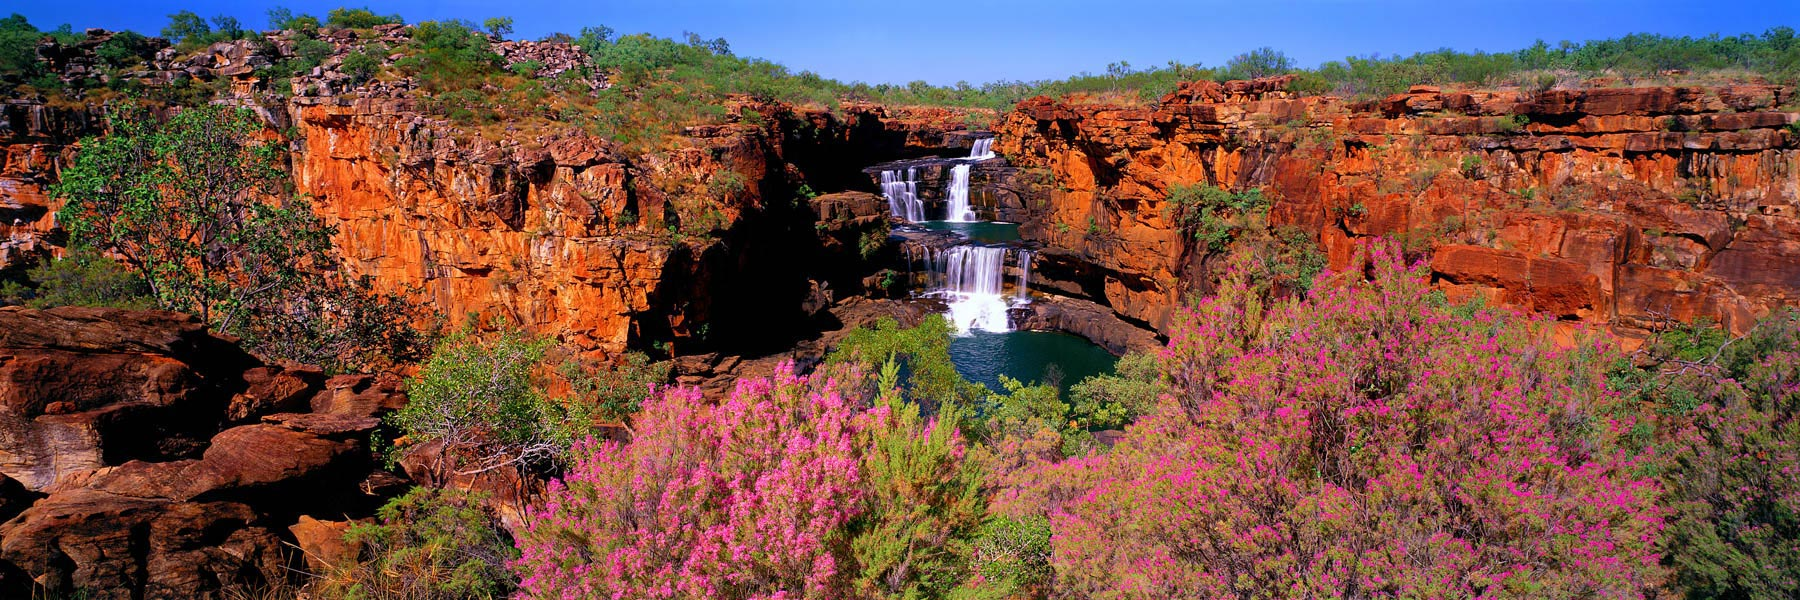 Spring wildflowers blooming at the top of Mitchell Falls, Kimberleys, WA, Australia.